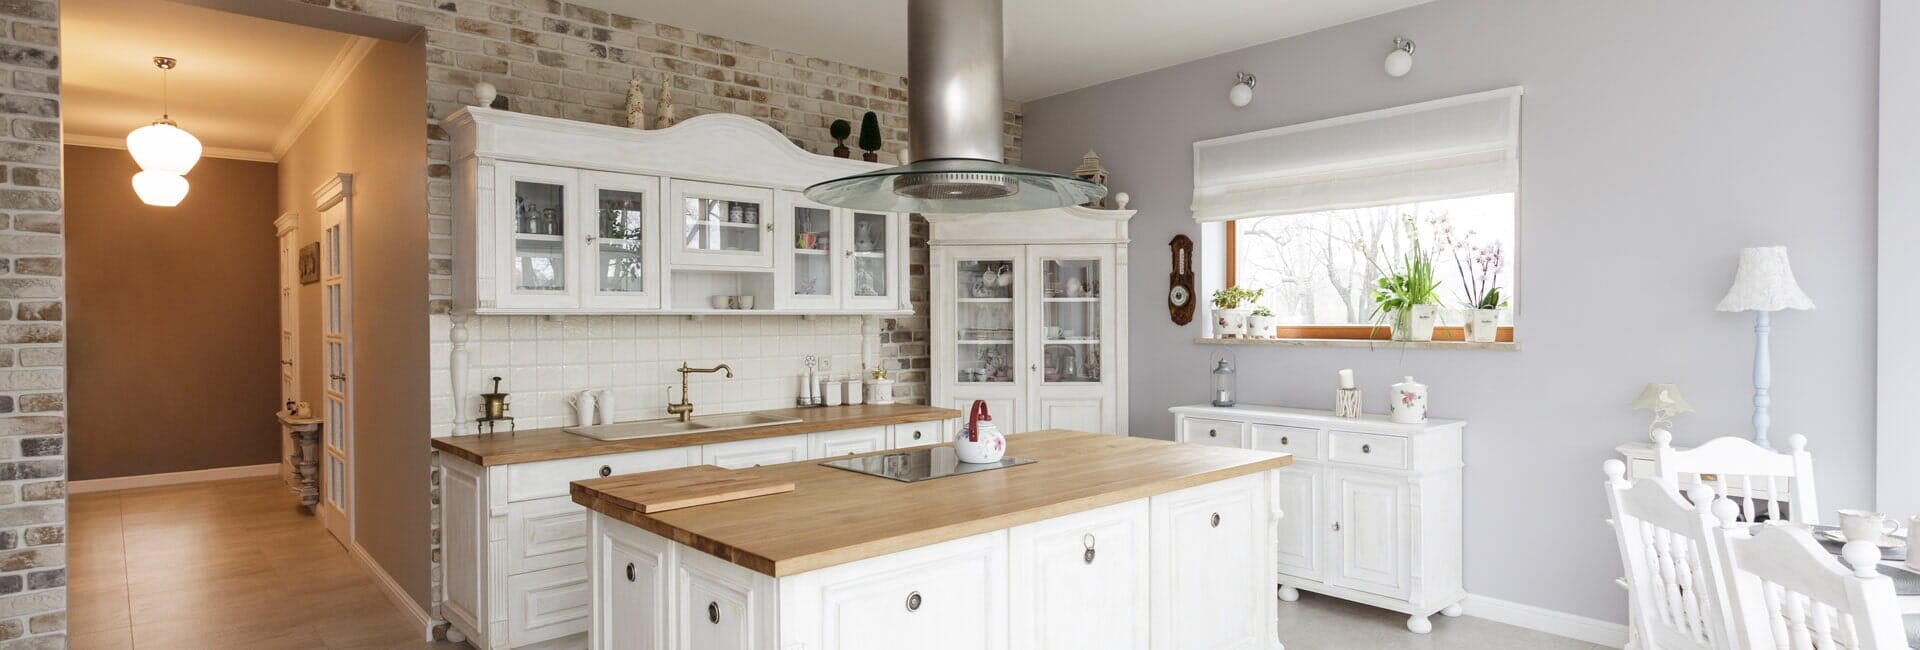 Exelent Paradise Kitchens Ensign - Home Design Ideas and Inspiration ...